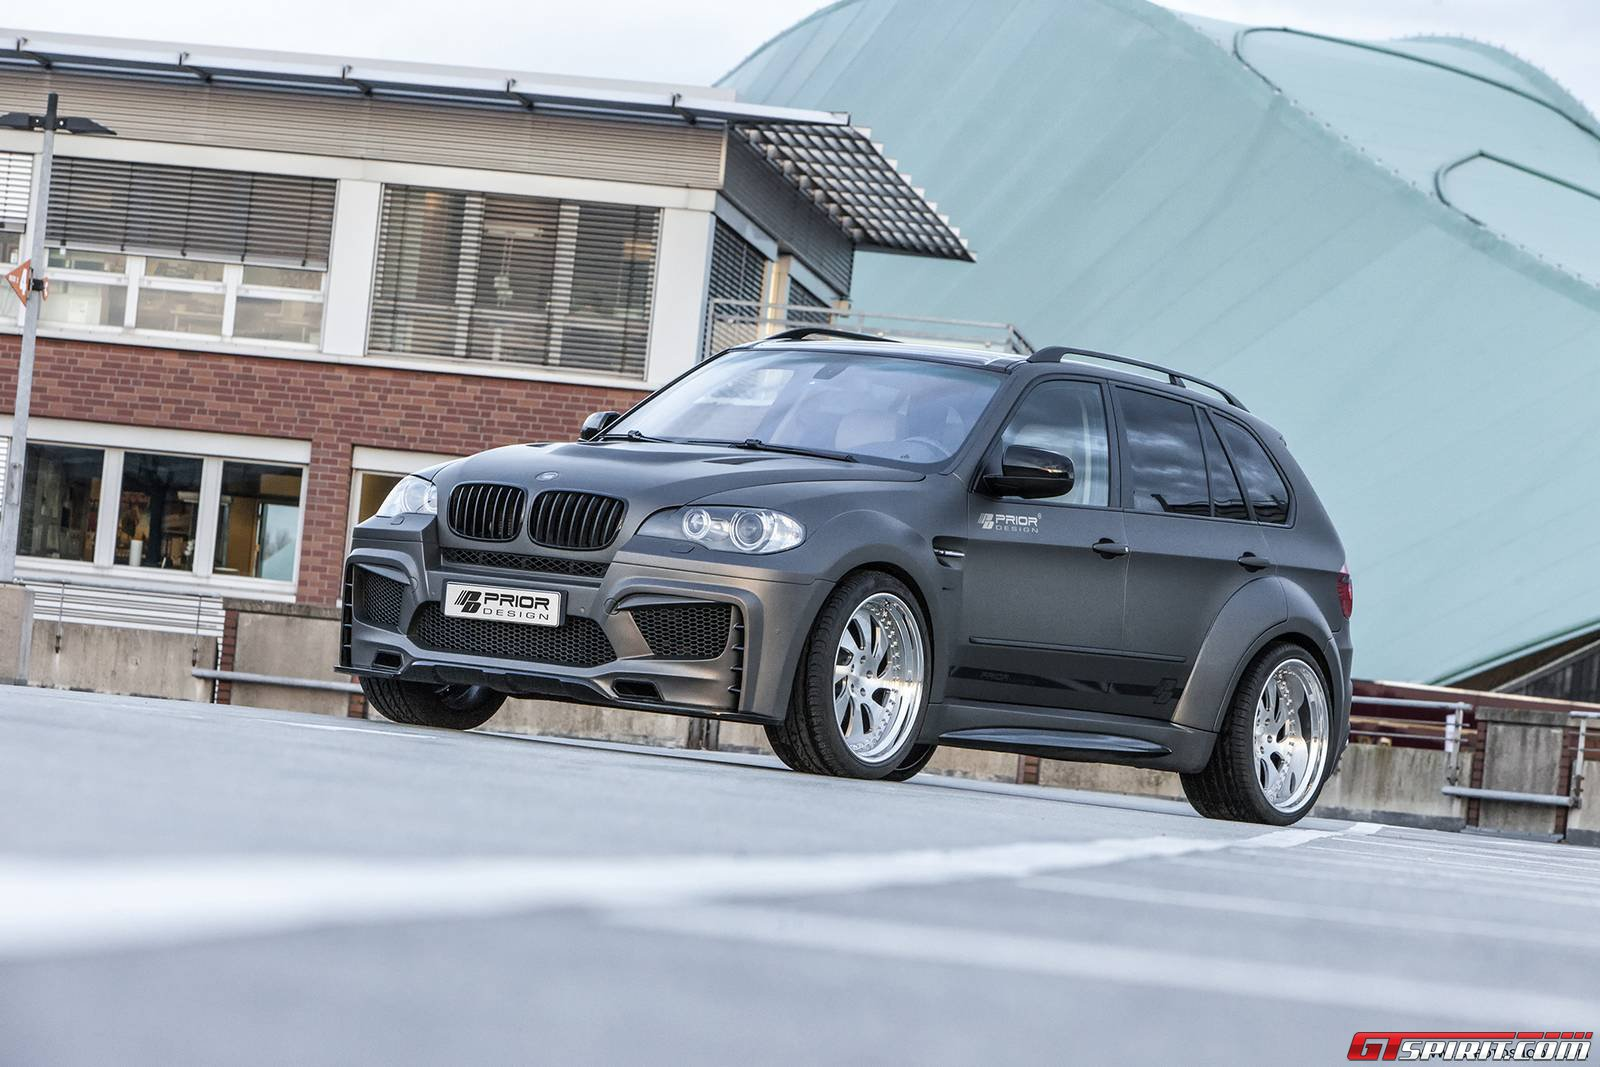 bmw e70 x5 pd5x by prior design photoshoot gtspirit. Black Bedroom Furniture Sets. Home Design Ideas